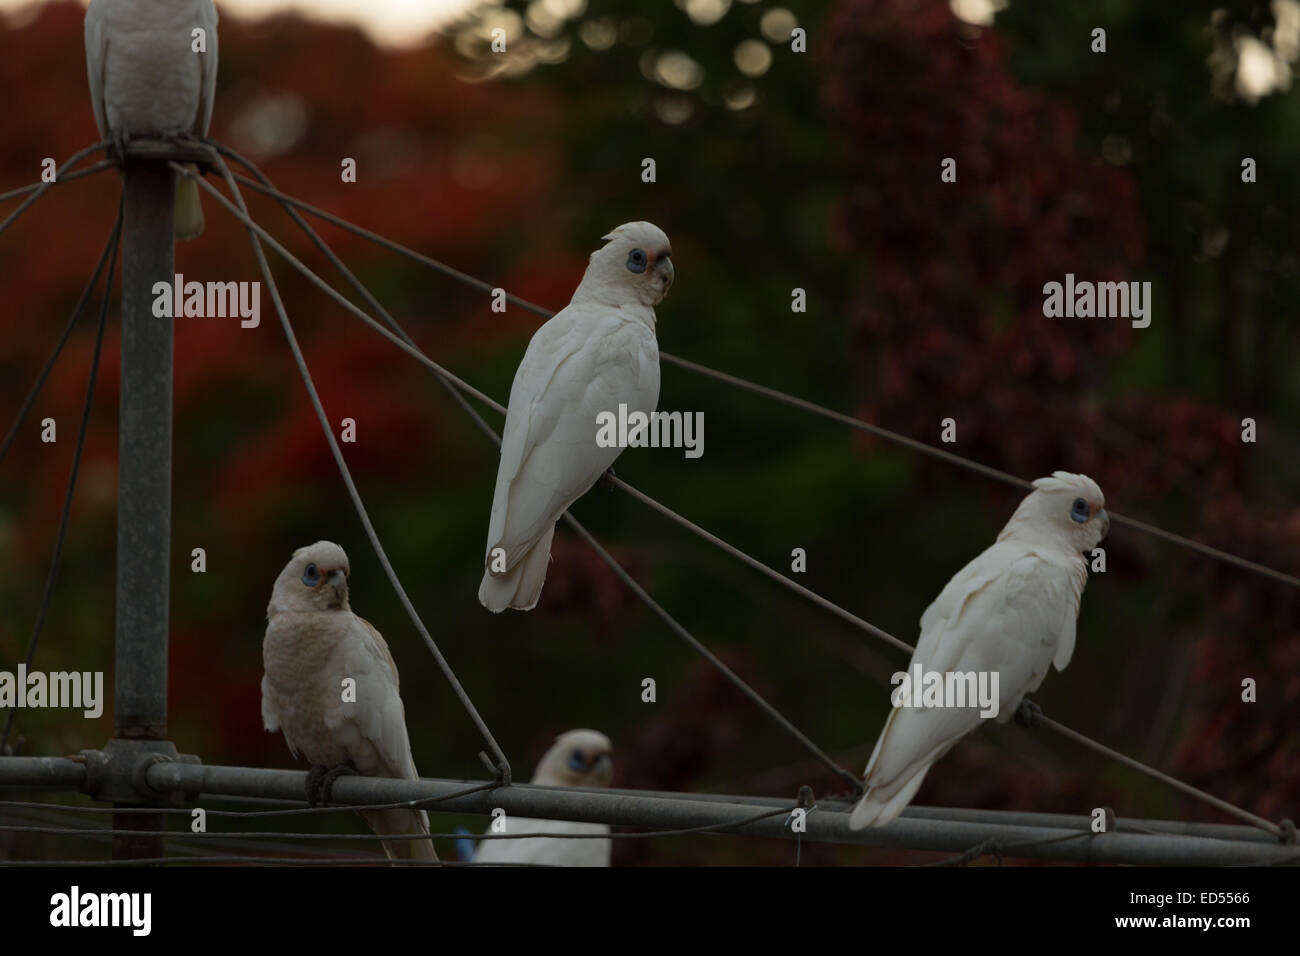 A photograph of some Little Corellas on a backyard clothesline. The photograph was taken in northern NSW, Australia. - Stock Image